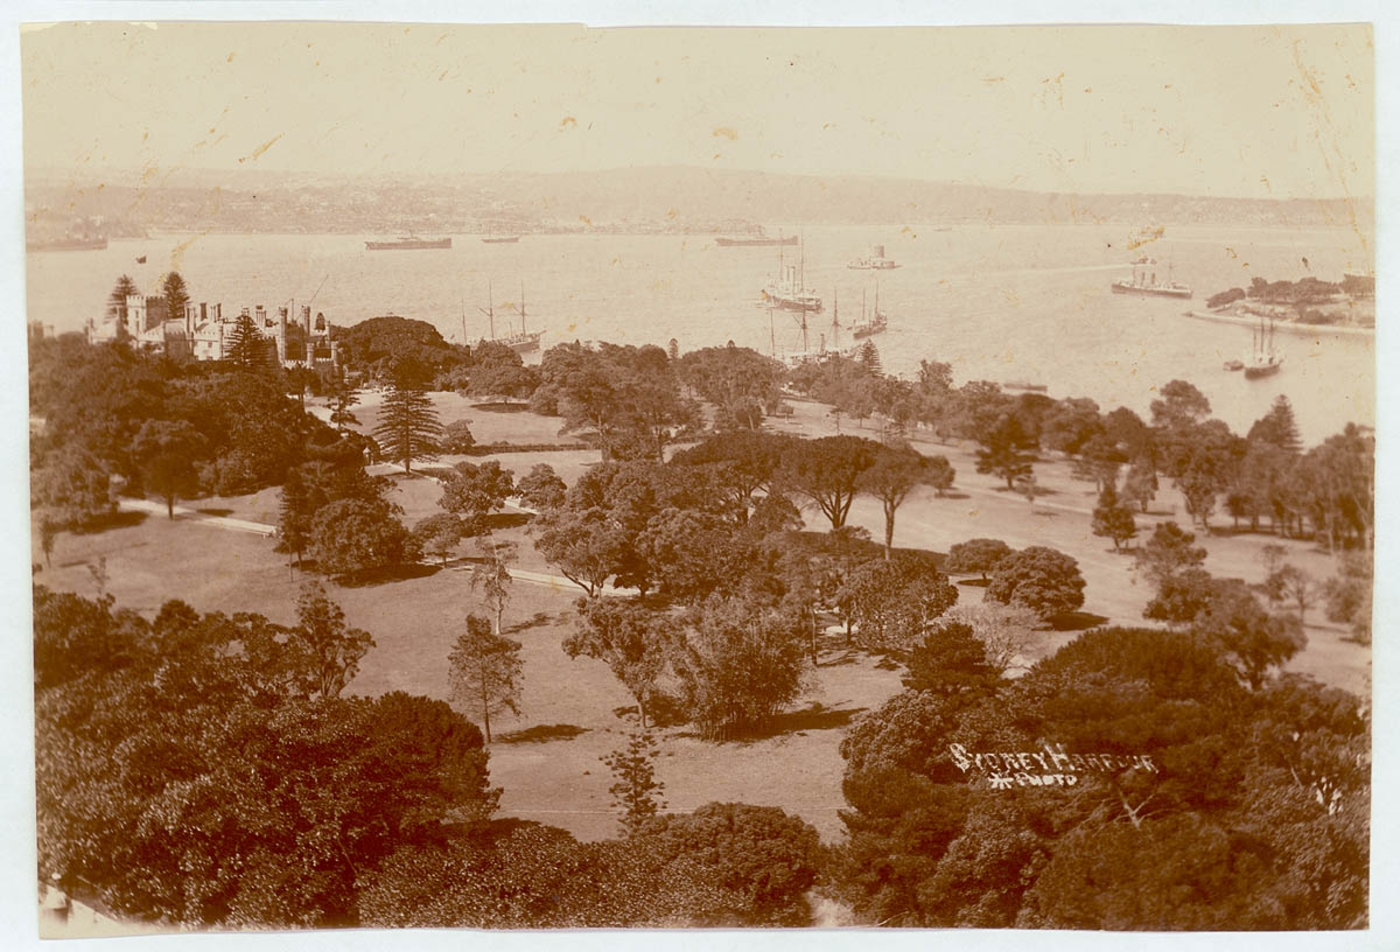 Sydney Harbour [including Botanical Gardens, Government House and Fort Denison], c. 1900-1910, Star Photographic Co.